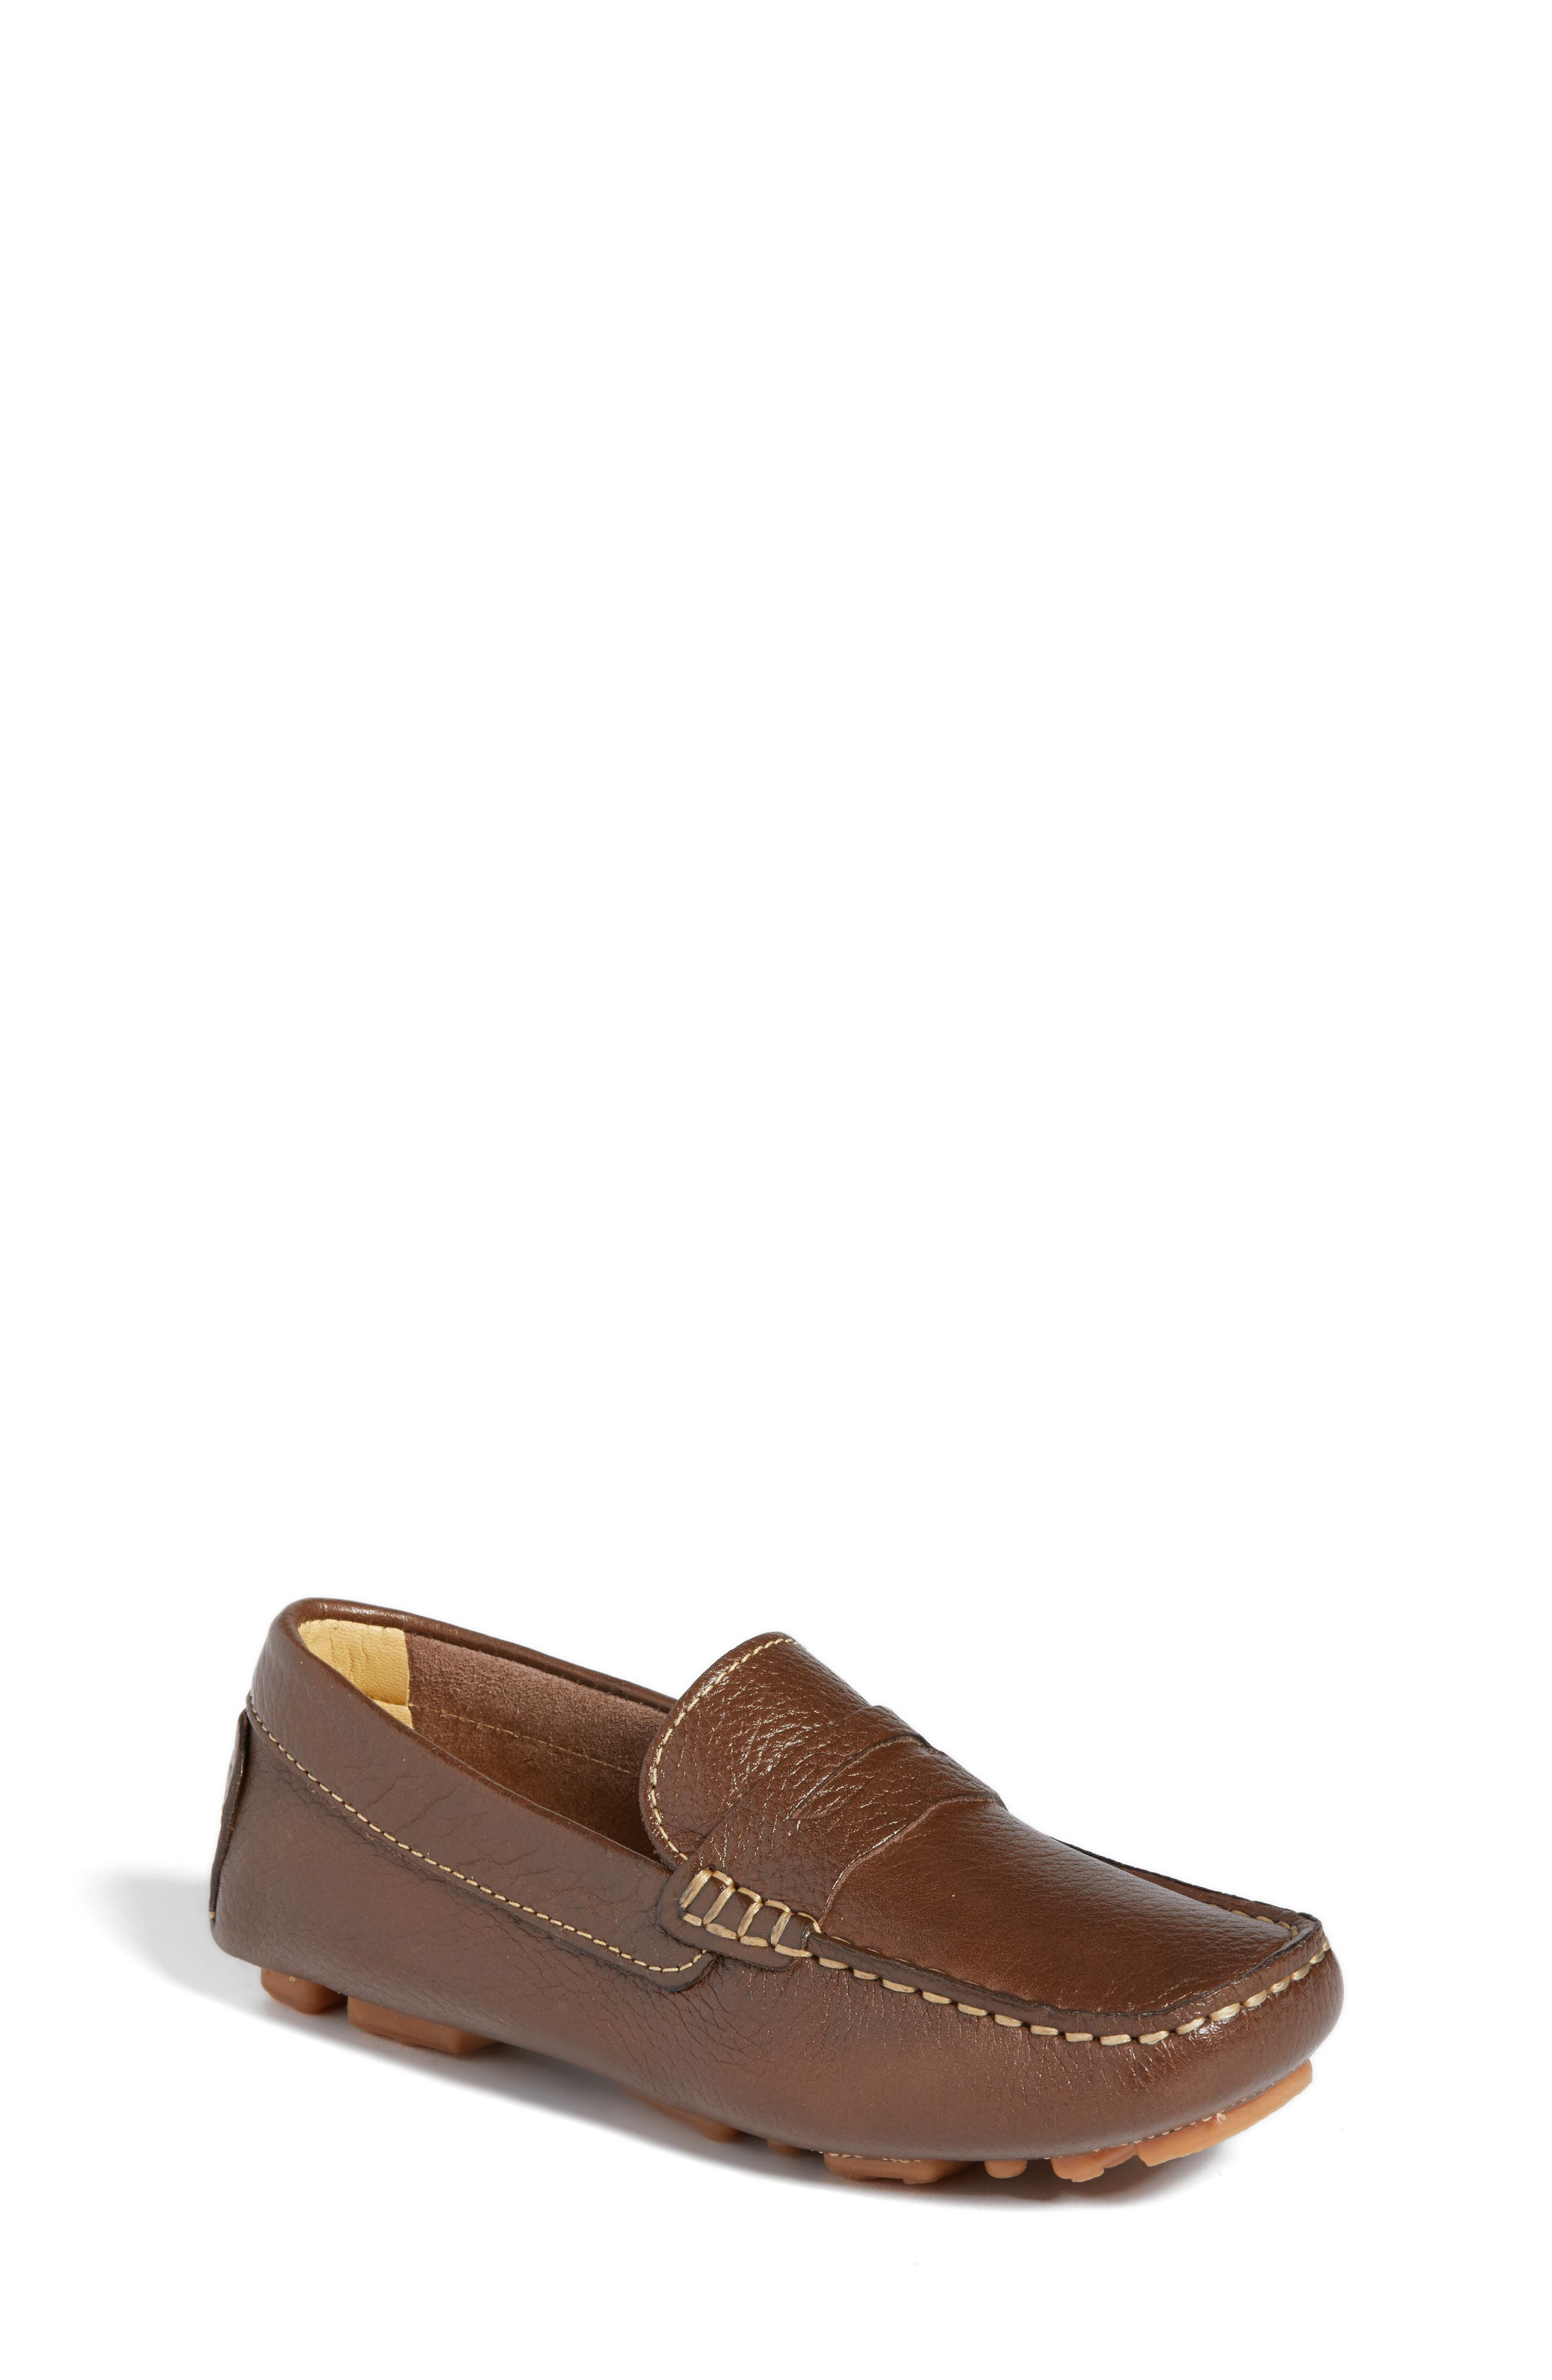 Tucker + Tate Matteo Moccasin (Toddler, Little Kid & Big Kid)